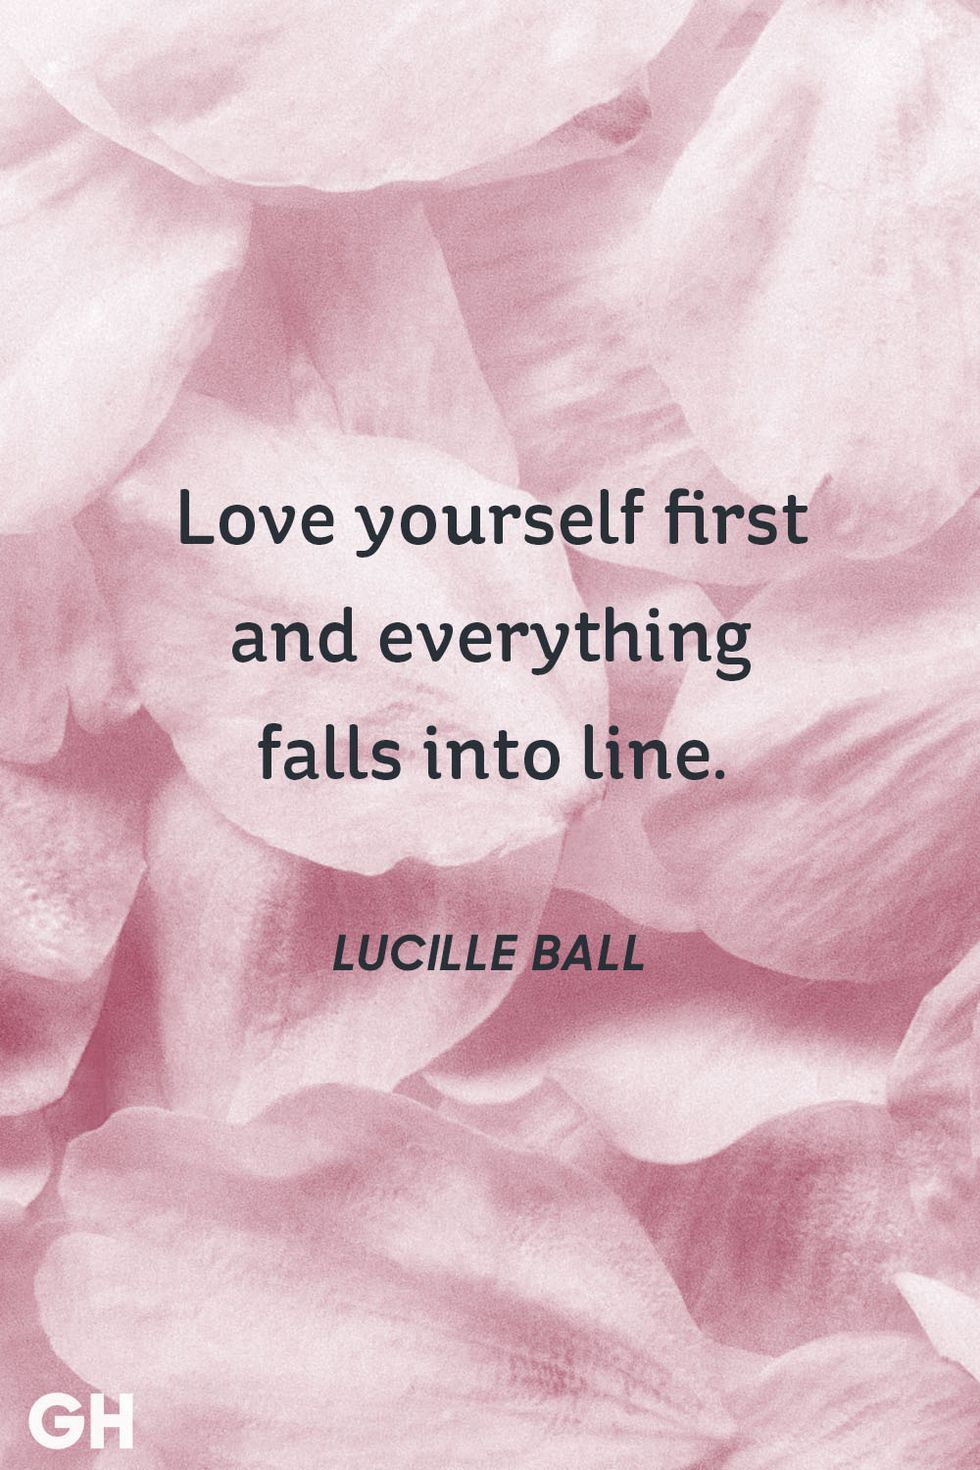 These Romantic Quotes About Love Will Get You in the Mood for Valentine's Day